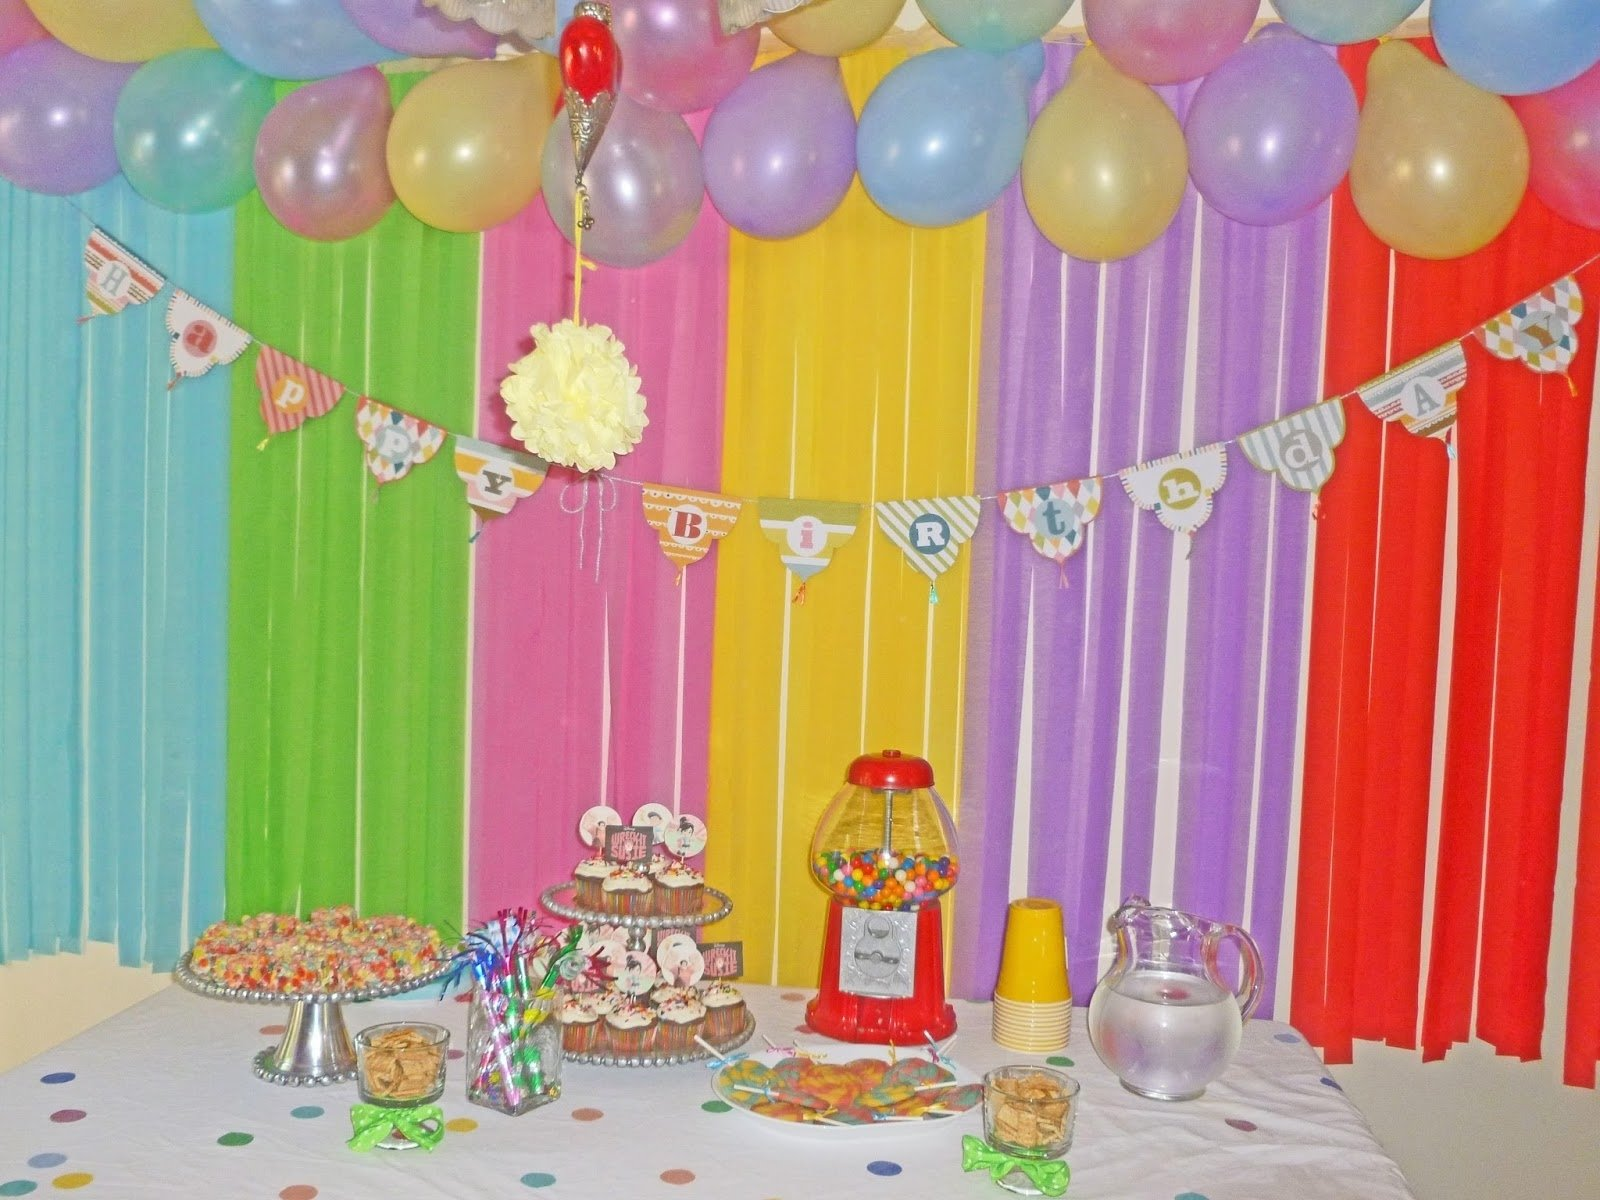 10 cute kids birthday party ideas at home